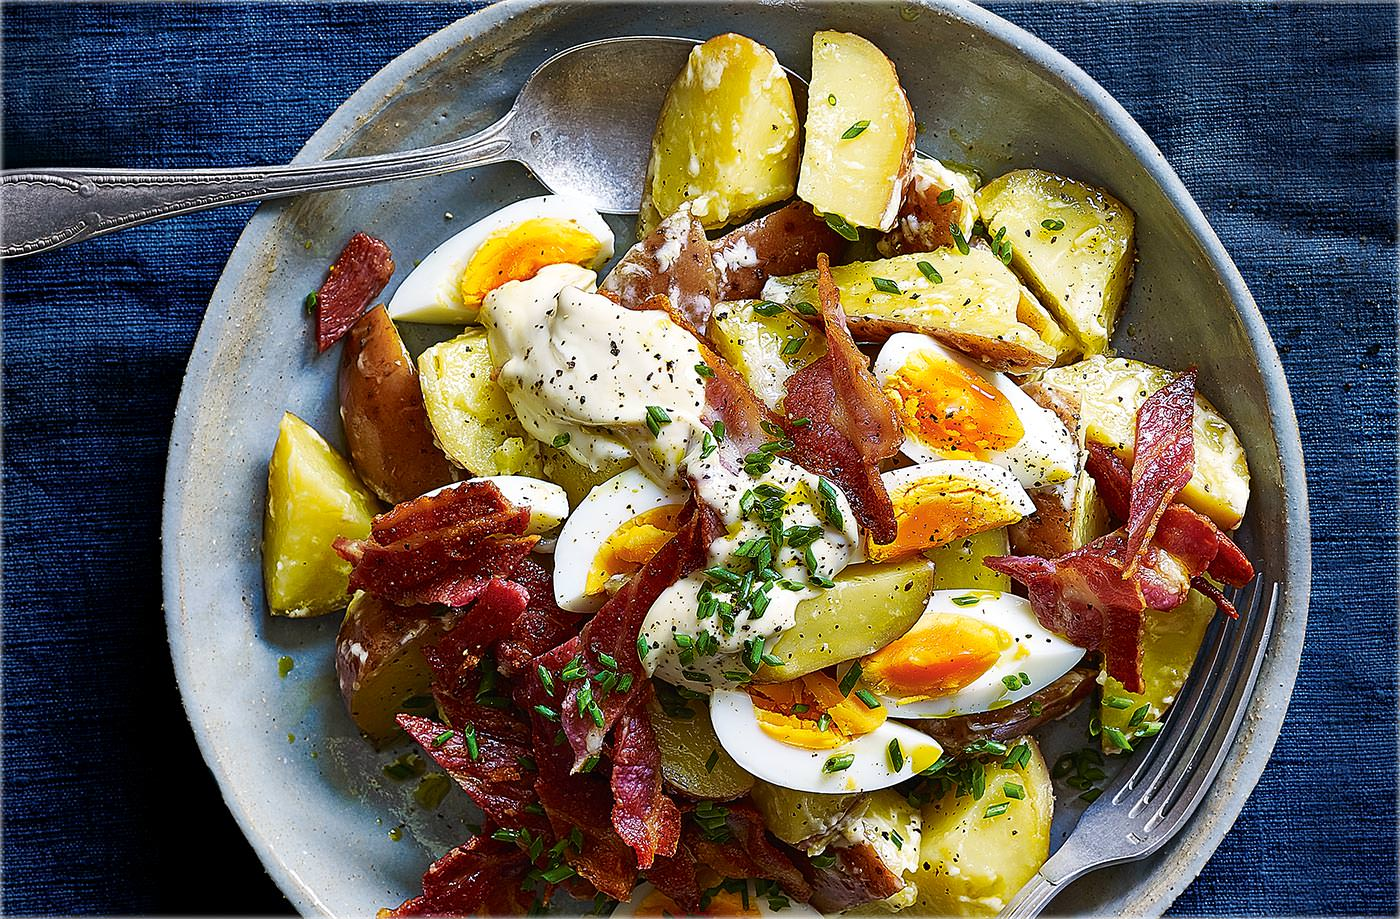 Crispy bacon and egg salad